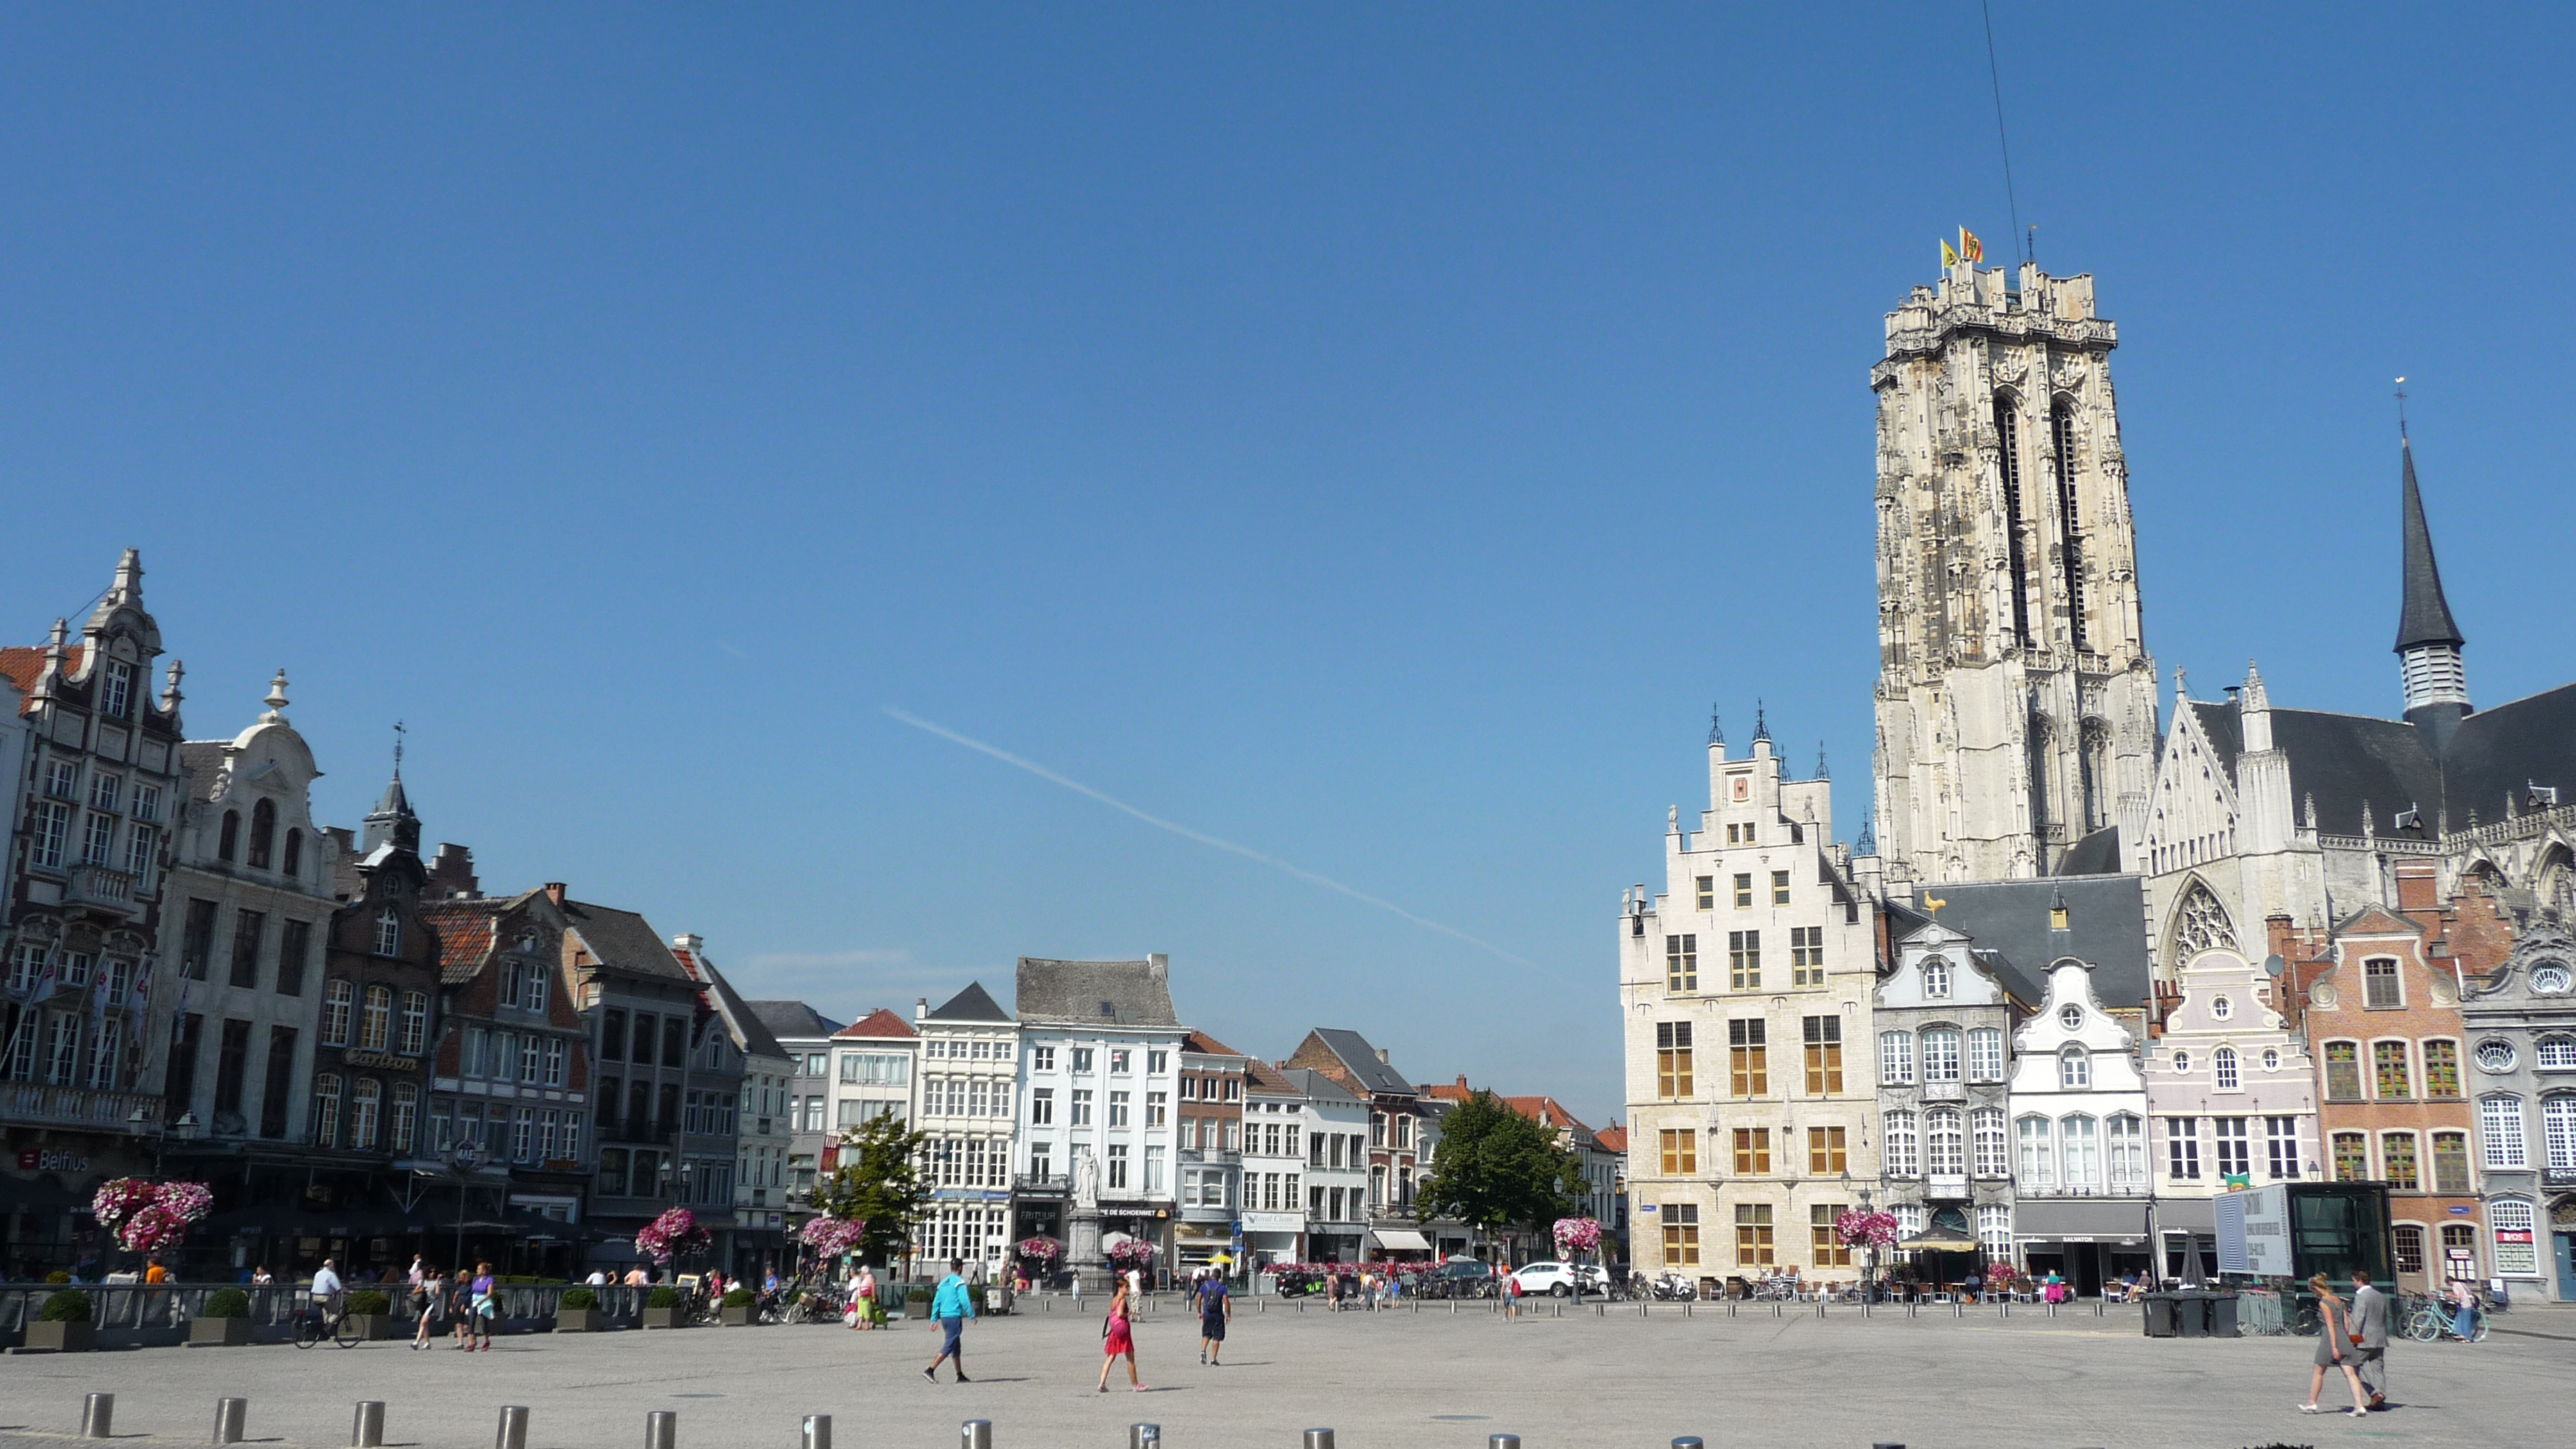 St. Rumbold's Tower Mechelen